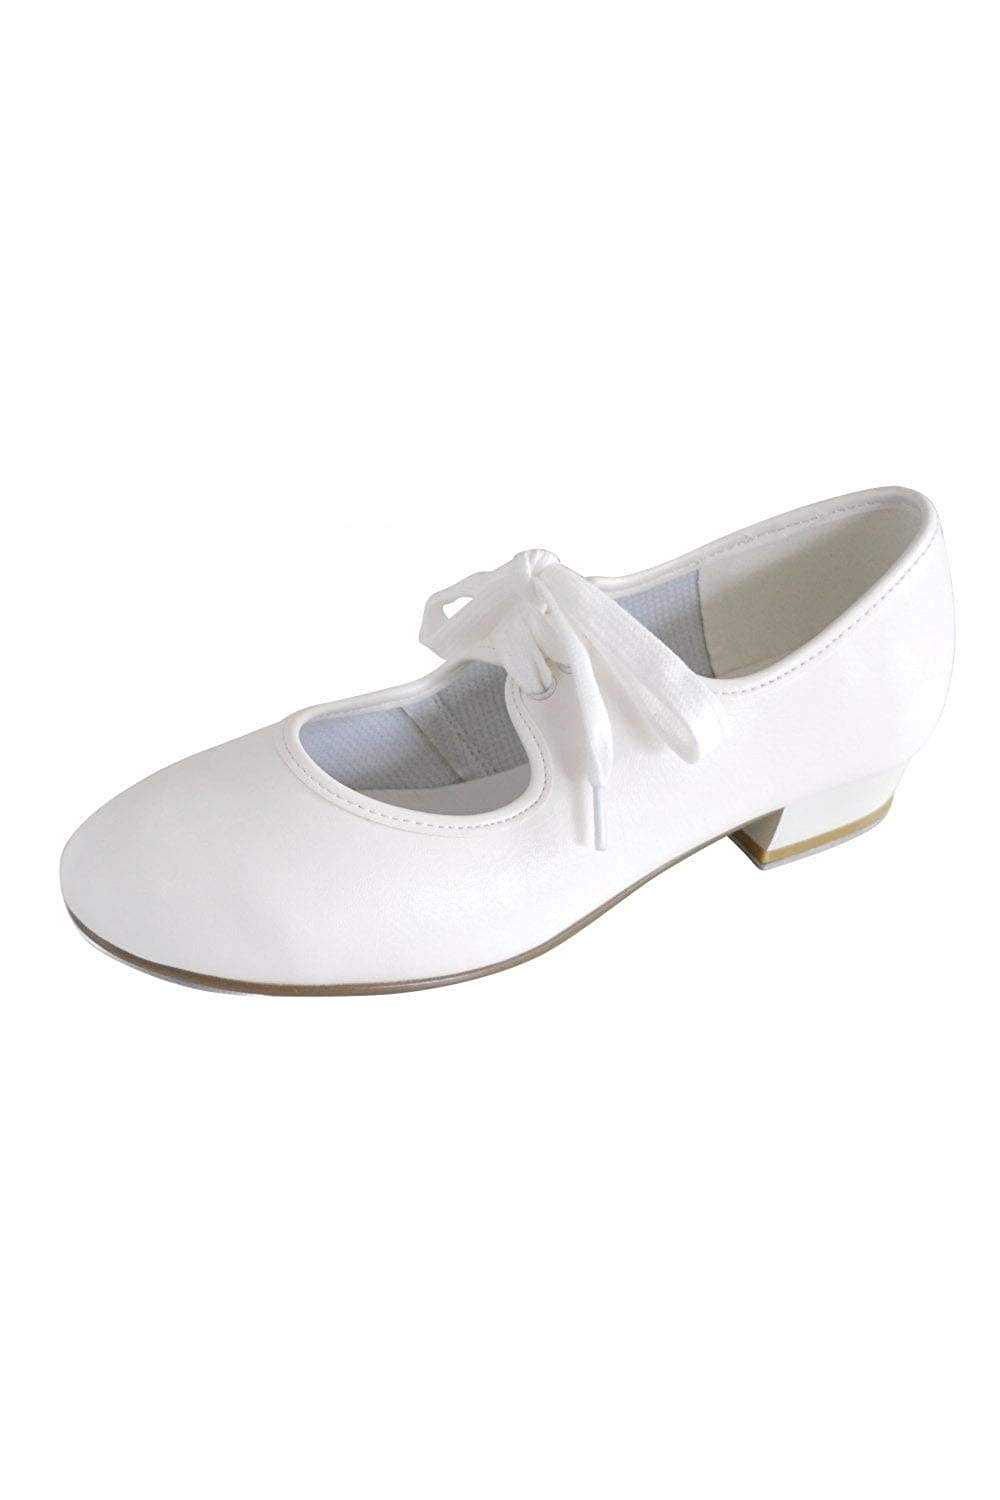 all sizes heel and toe taps White